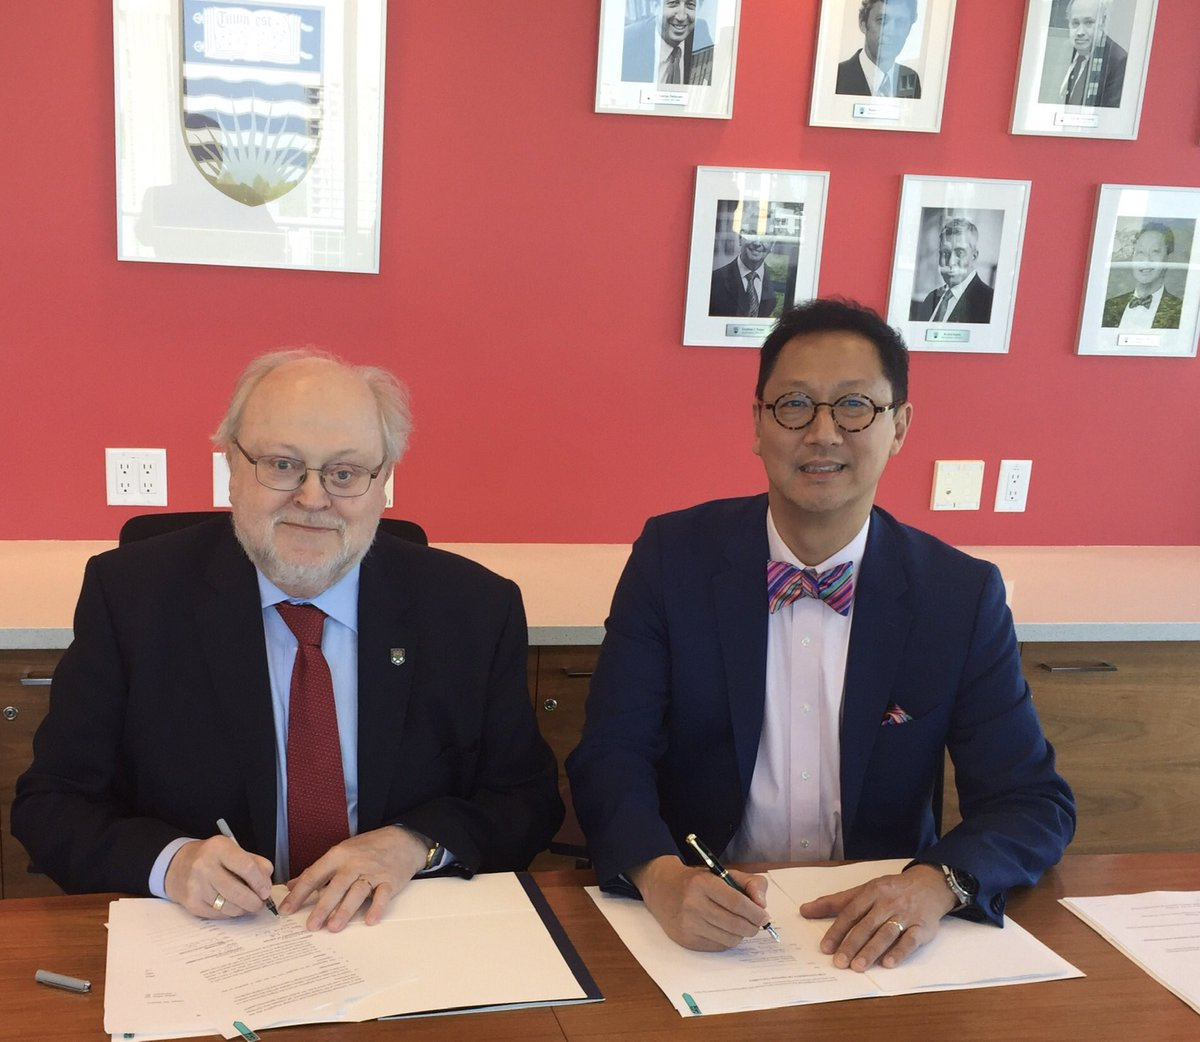 @UniofExeter strengthens global partnerships in Canada. Includes great new agreement with @UBC to expand opportunities for students to move between two high quality universities in beautiful locations. Read more: http://ex.ac.uk/bDE